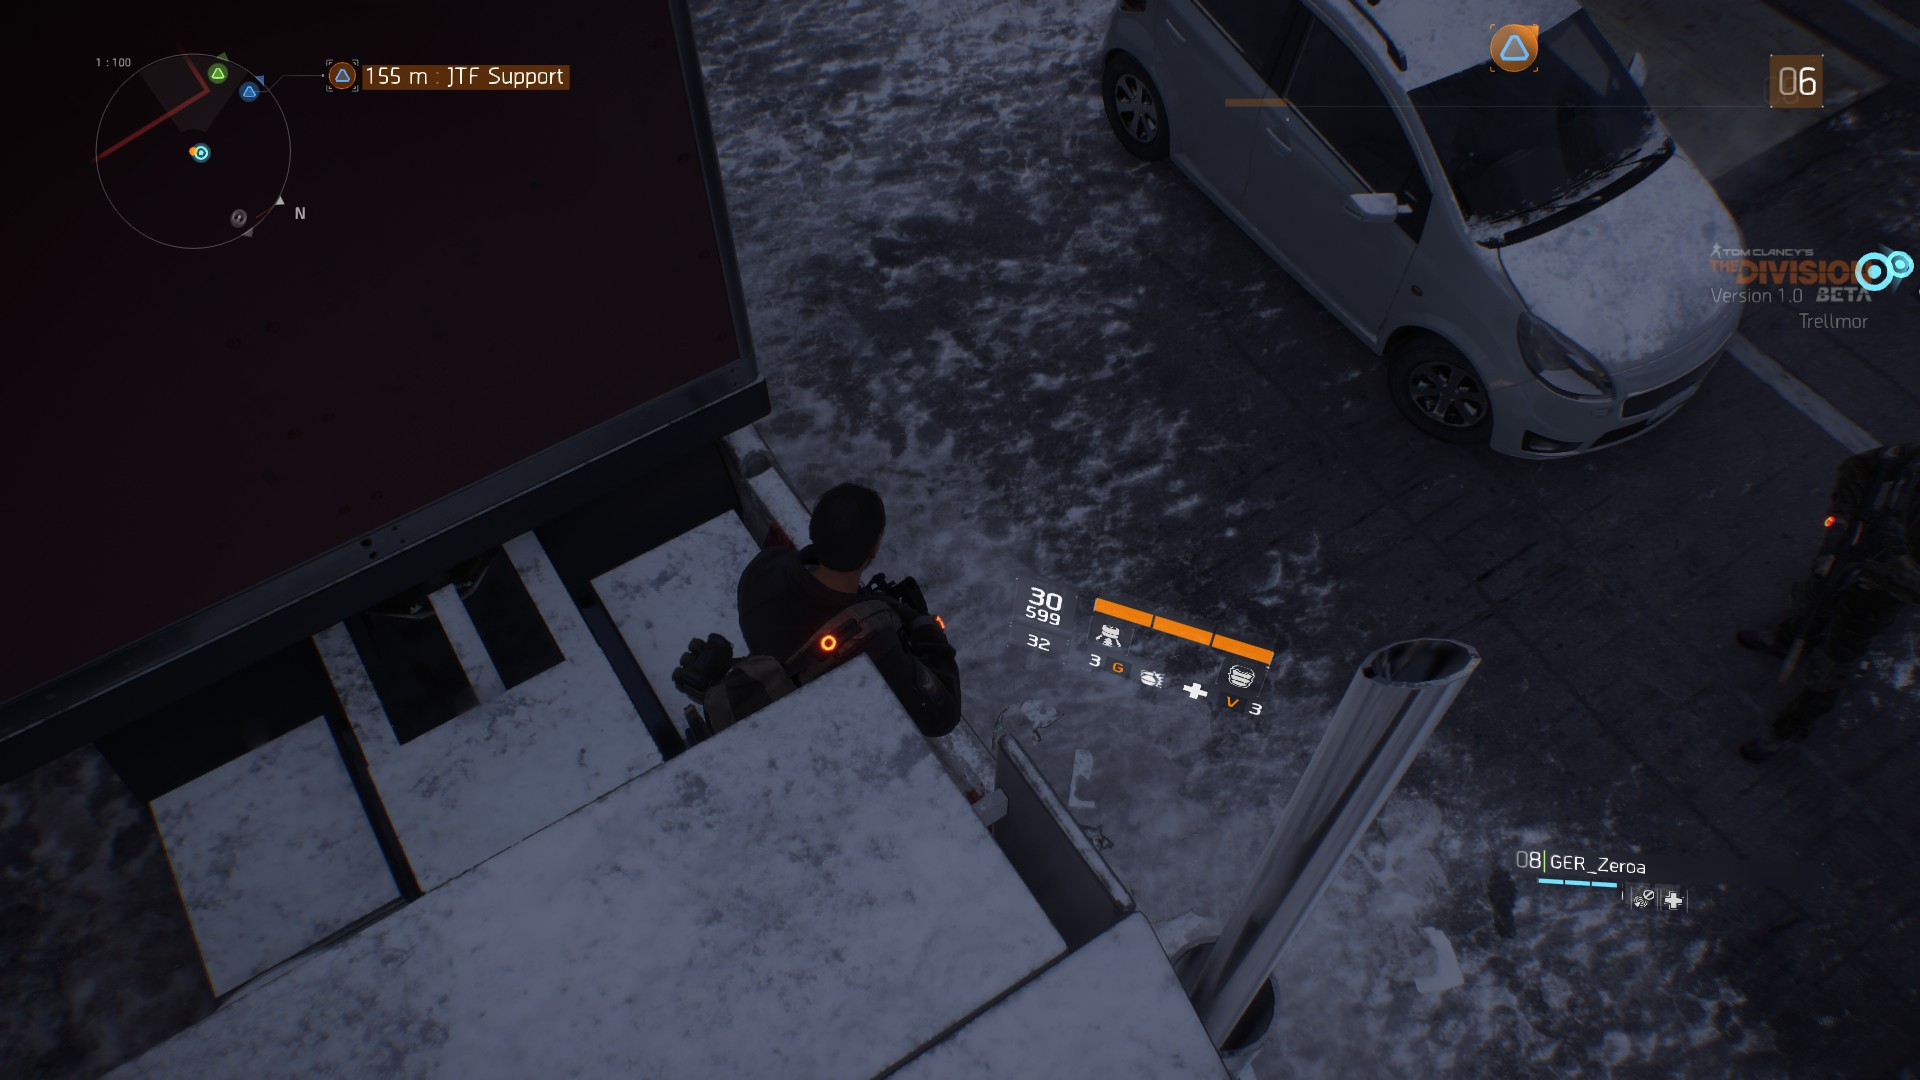 Tom Clancy's The Division Beta2016-1-30-16-48-40.jpg